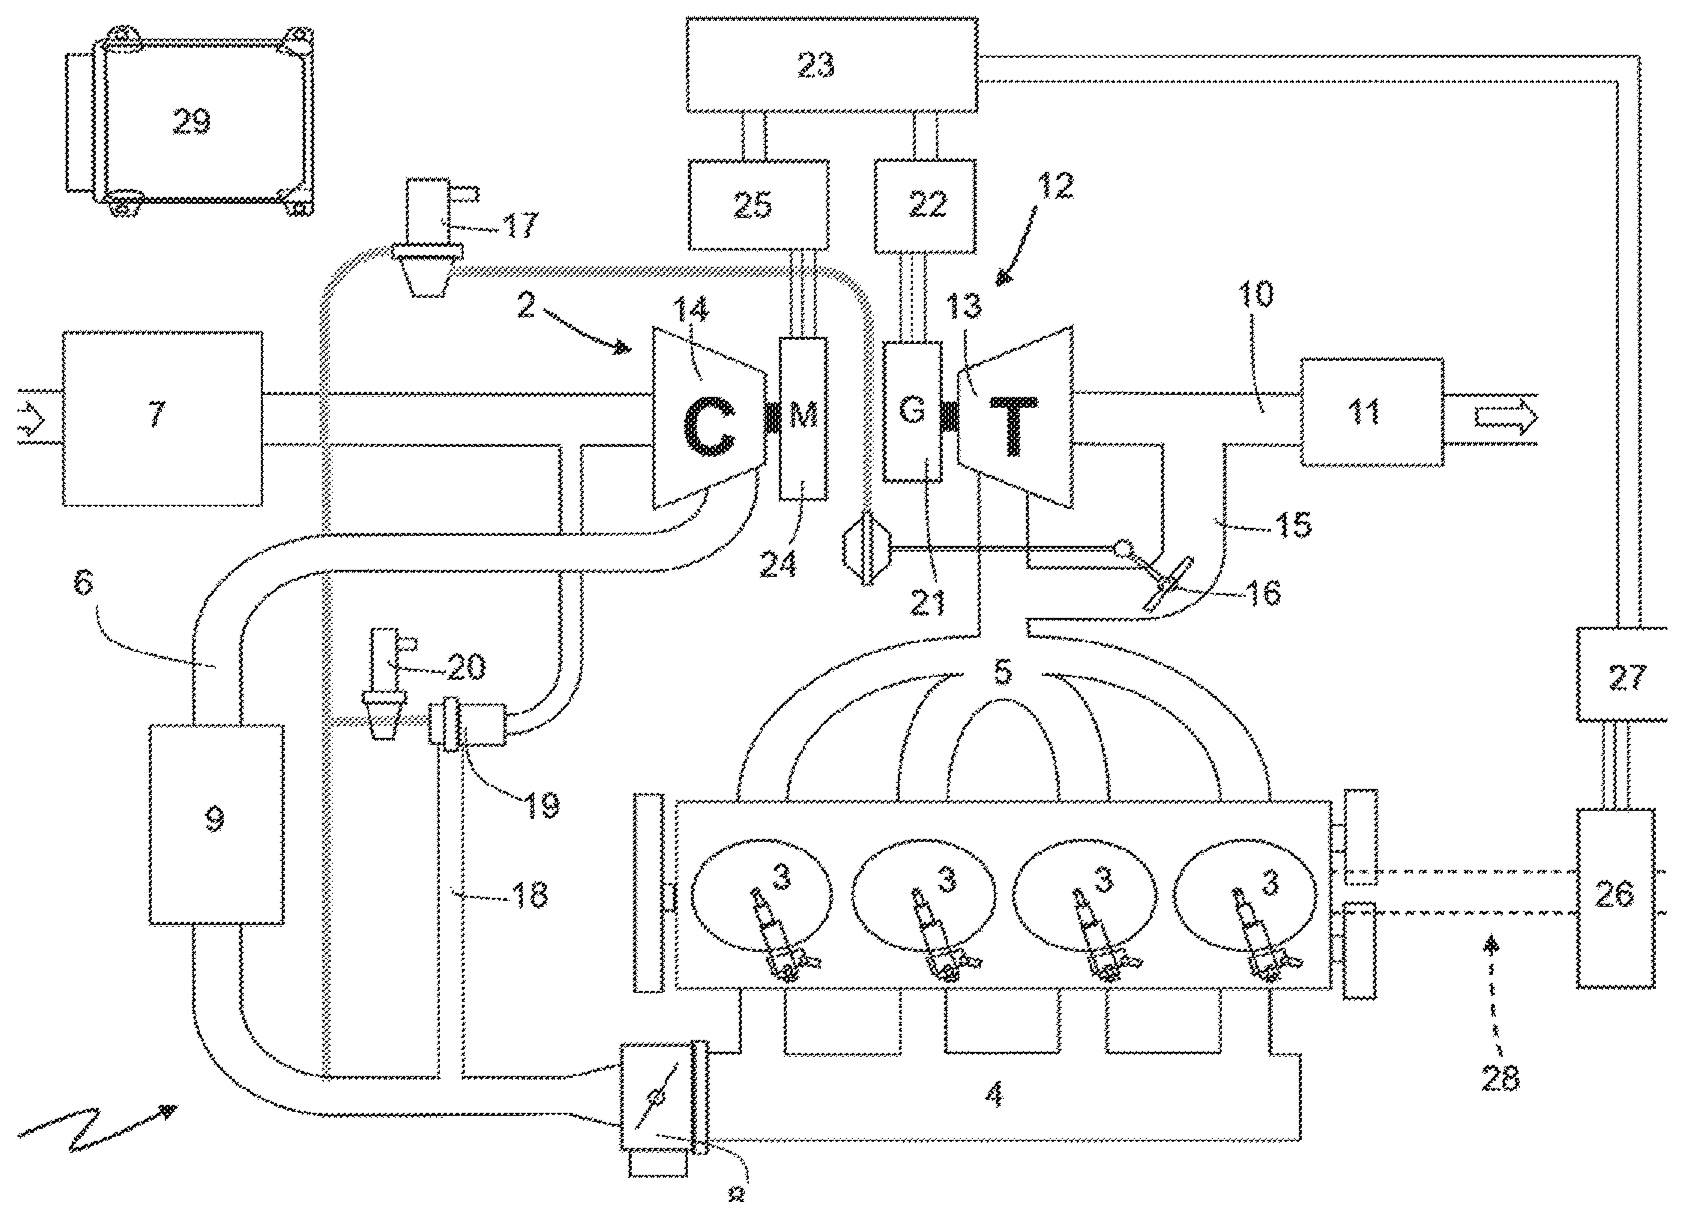 The Sound Of A Ferrari Engine Diagram This Application Addresses Supercharger Driven By An Electric Motor Exhaust Turbine Drives Generator To Power Battery And